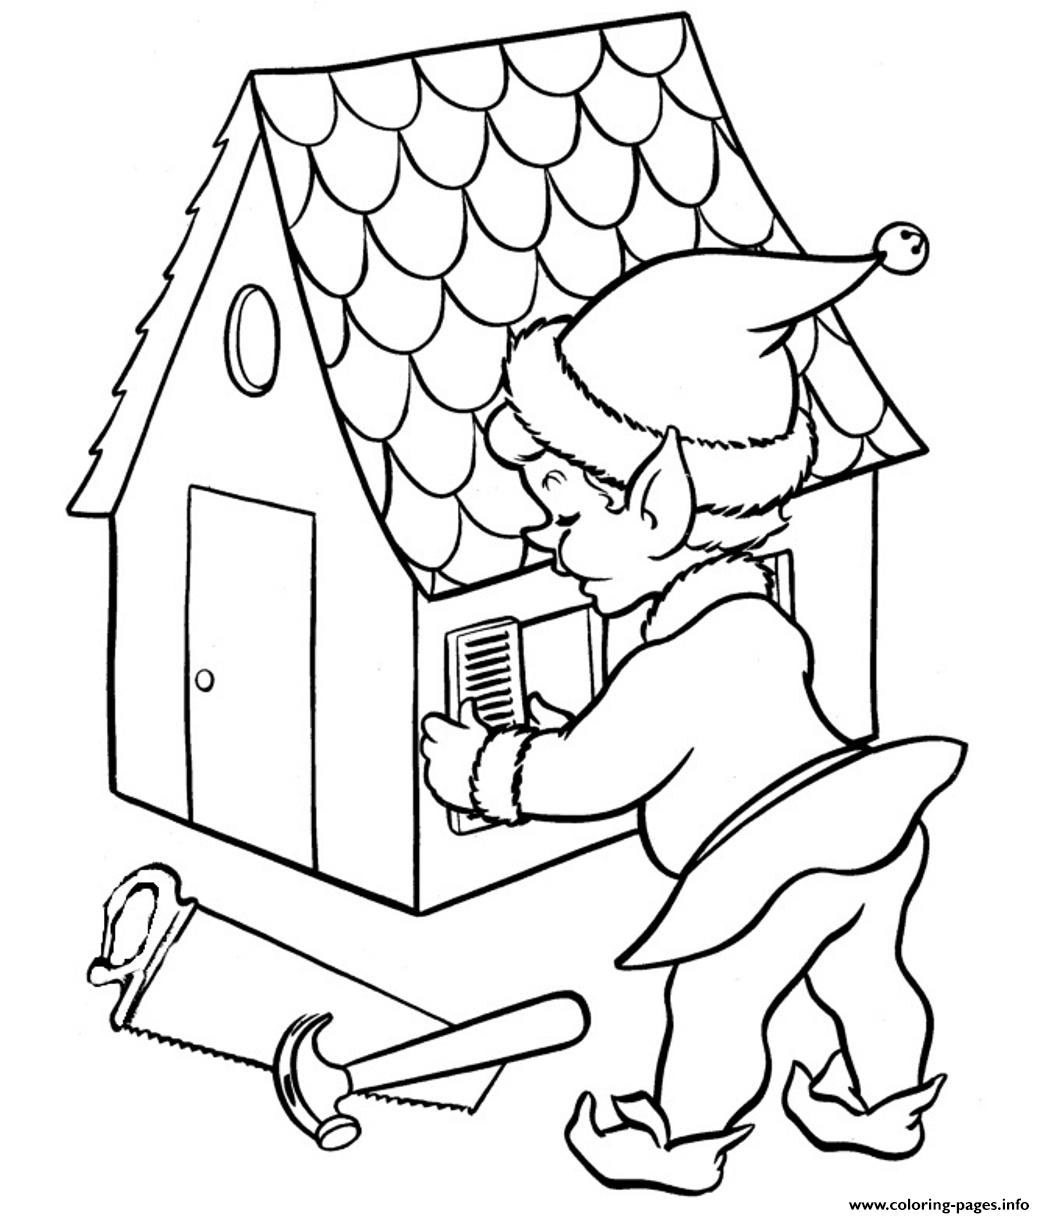 Elf Free Coloring Christmas Pages12a0f coloring pages